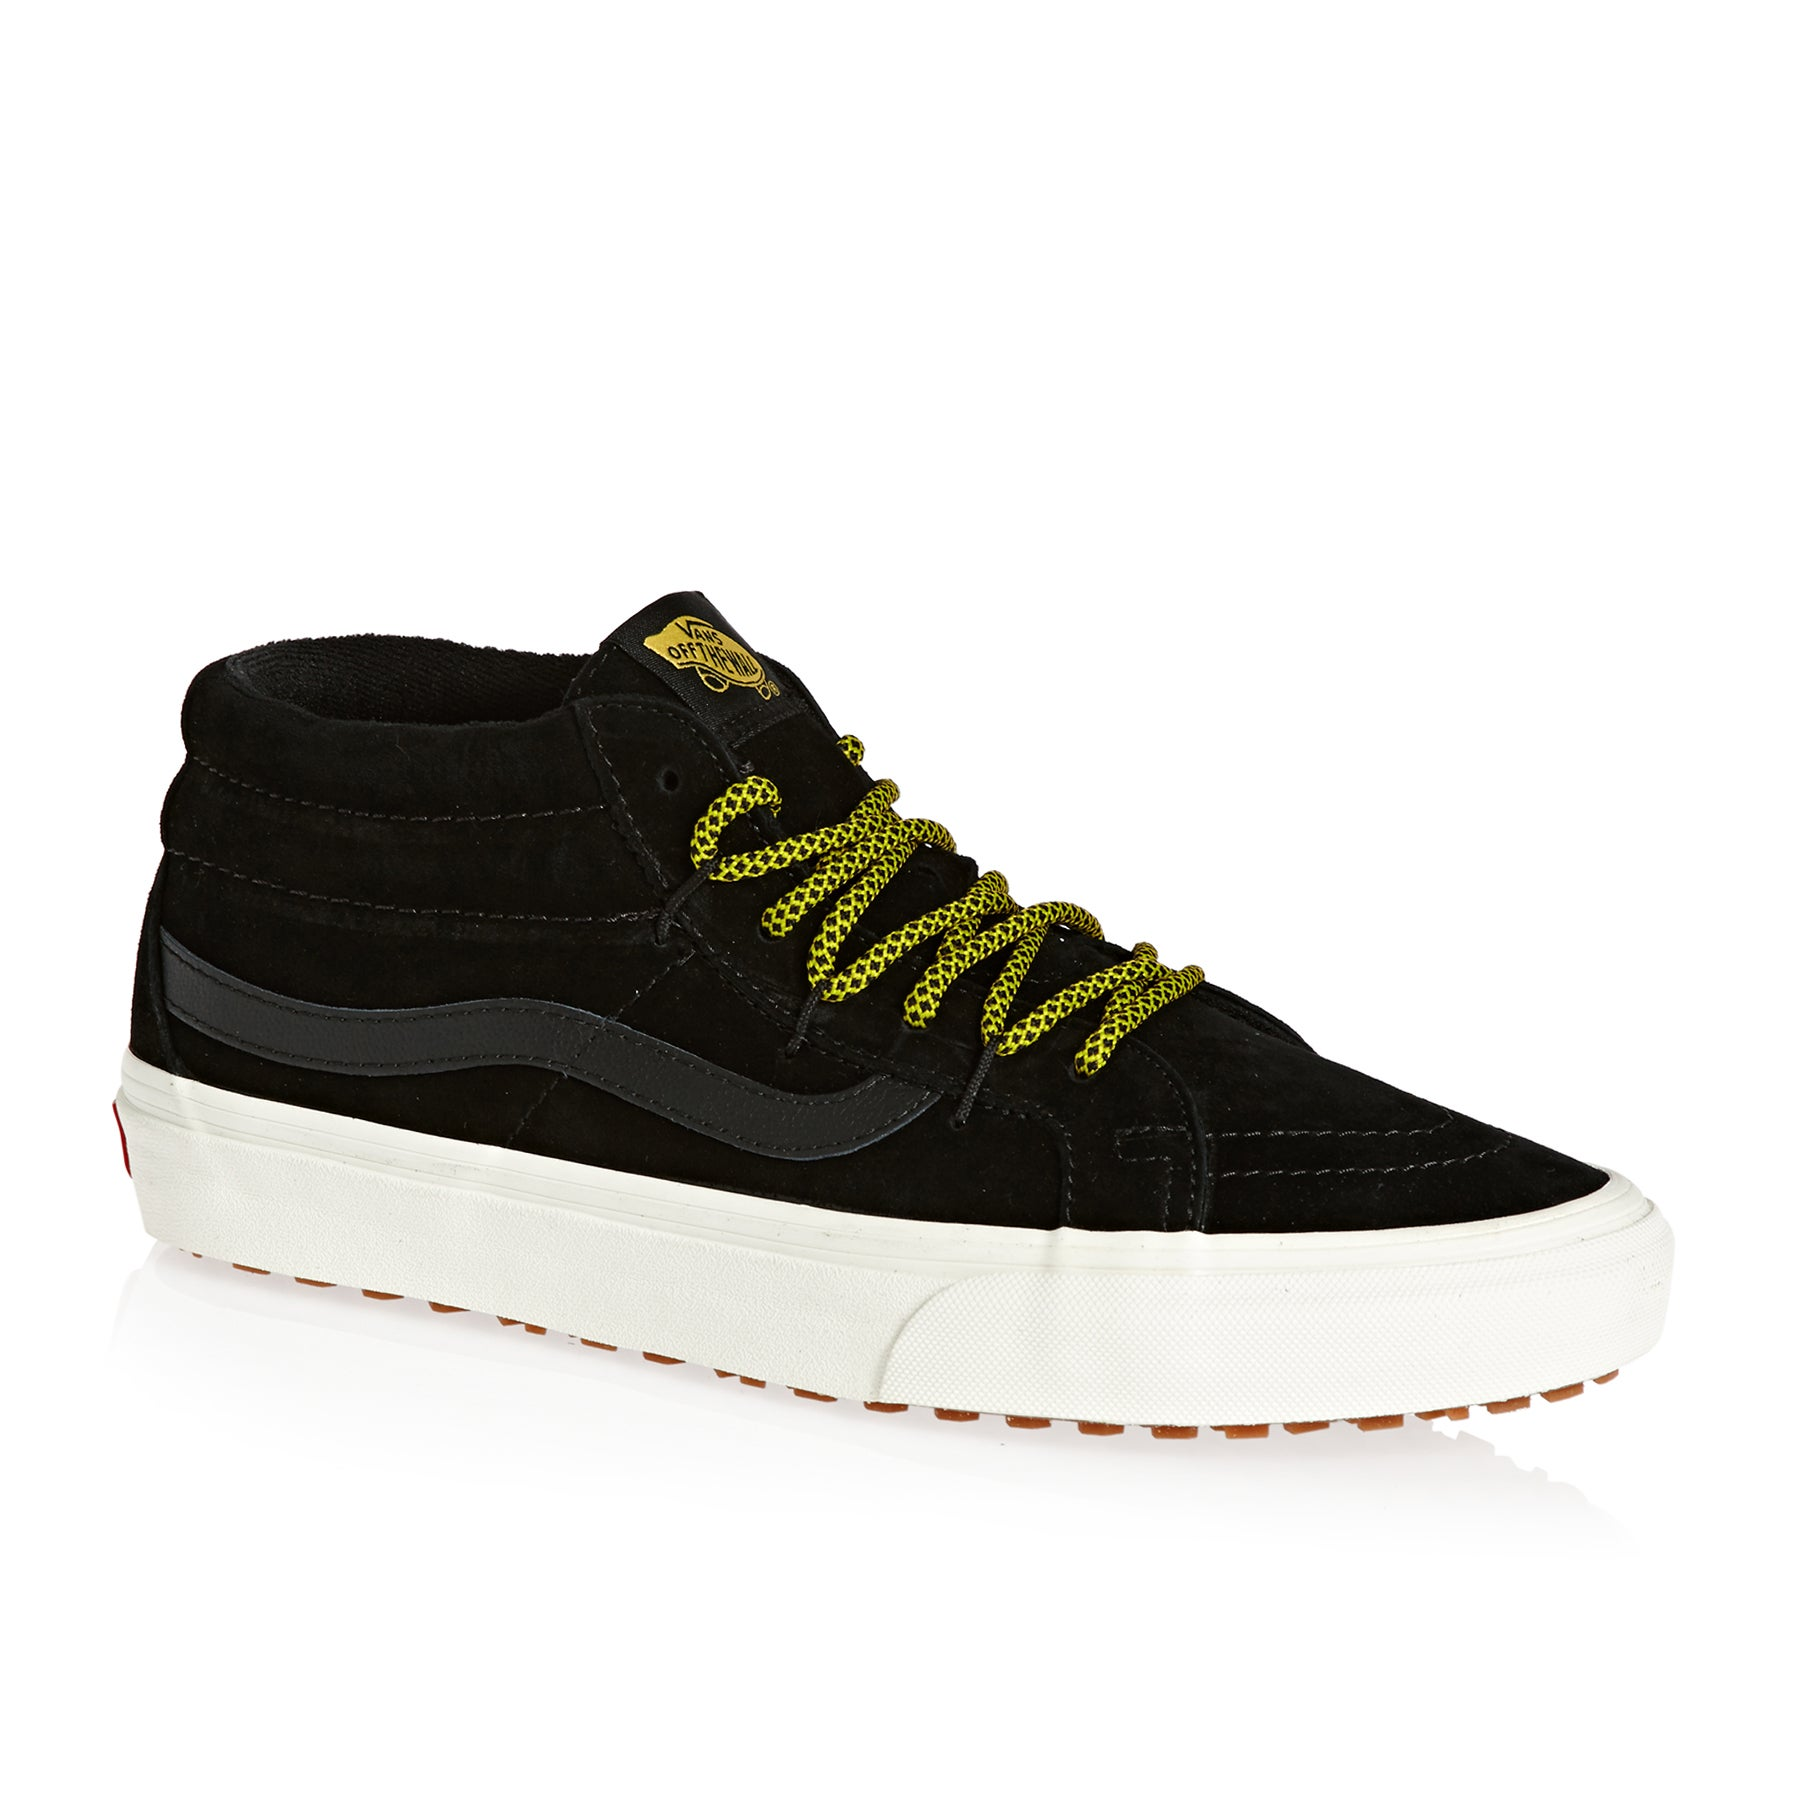 Vans SK8 Mid Reissue Ghillie MTE Shoes